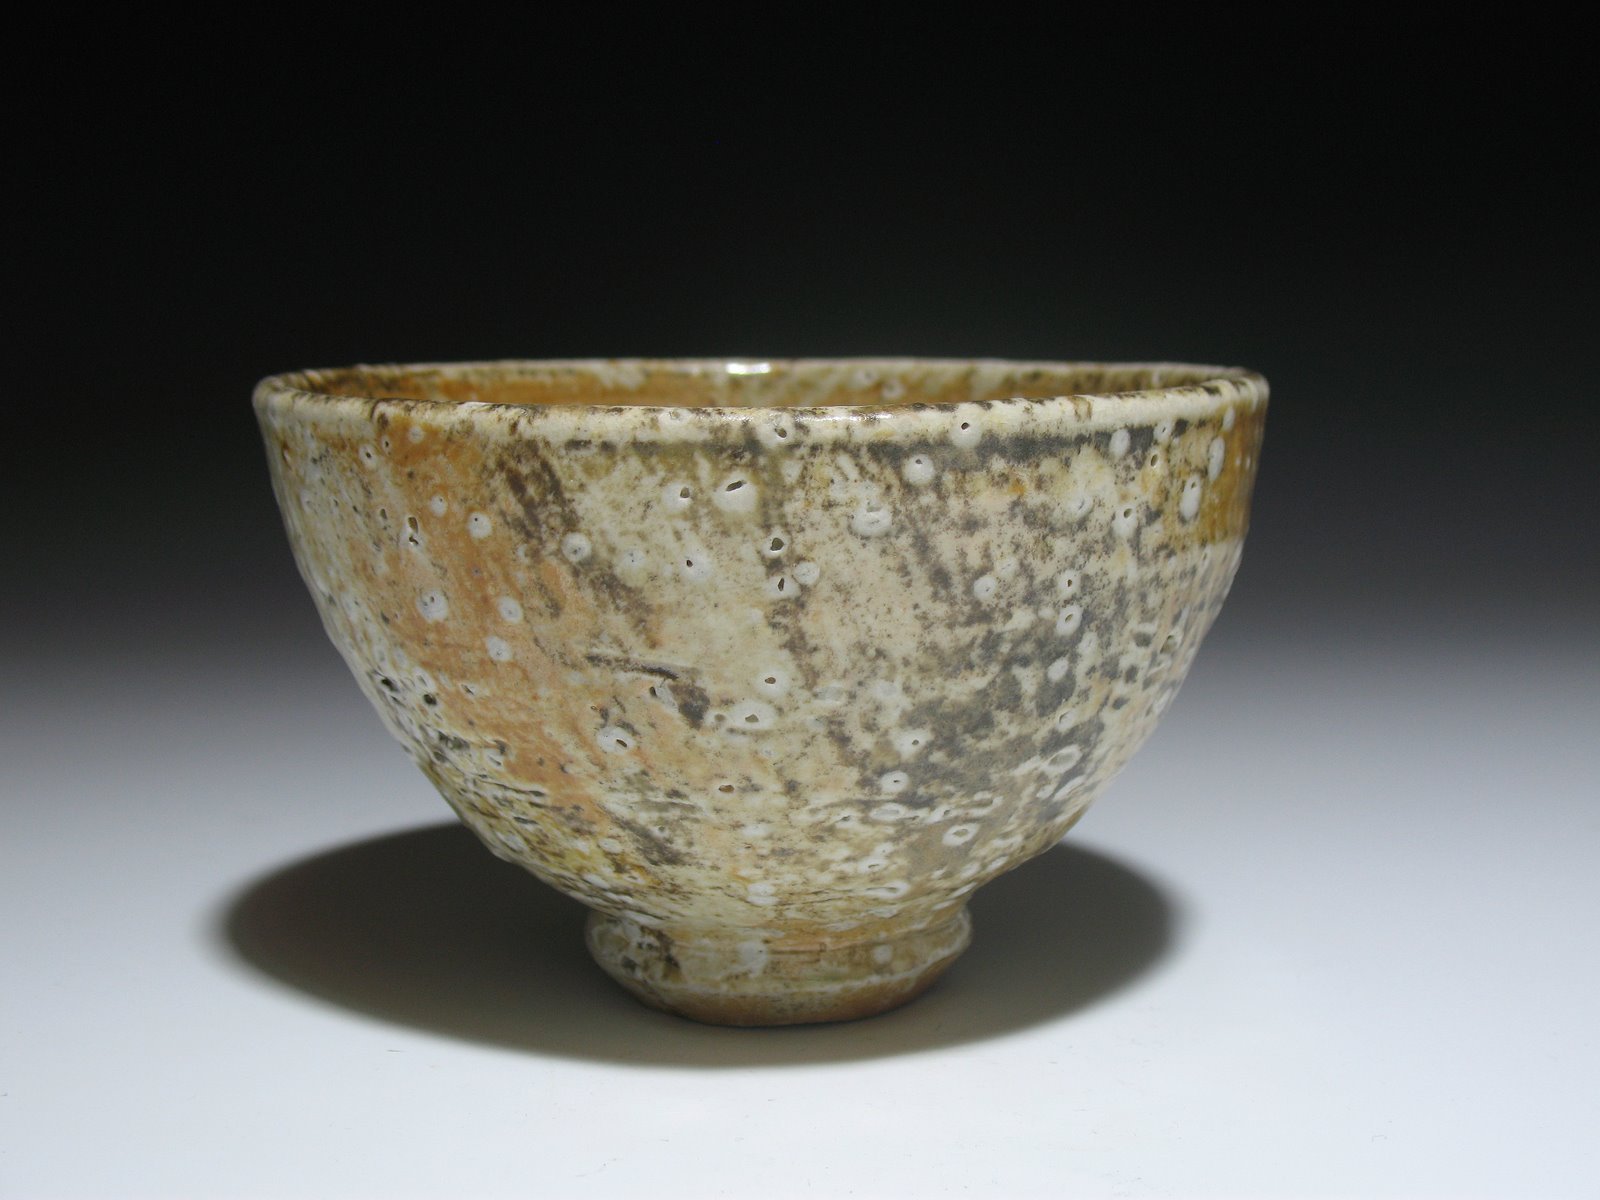 The pottery of ancient Korea stretches back to prehistory when simple brown wares were made and decorated with geometrical incisions. Potters would benefit.